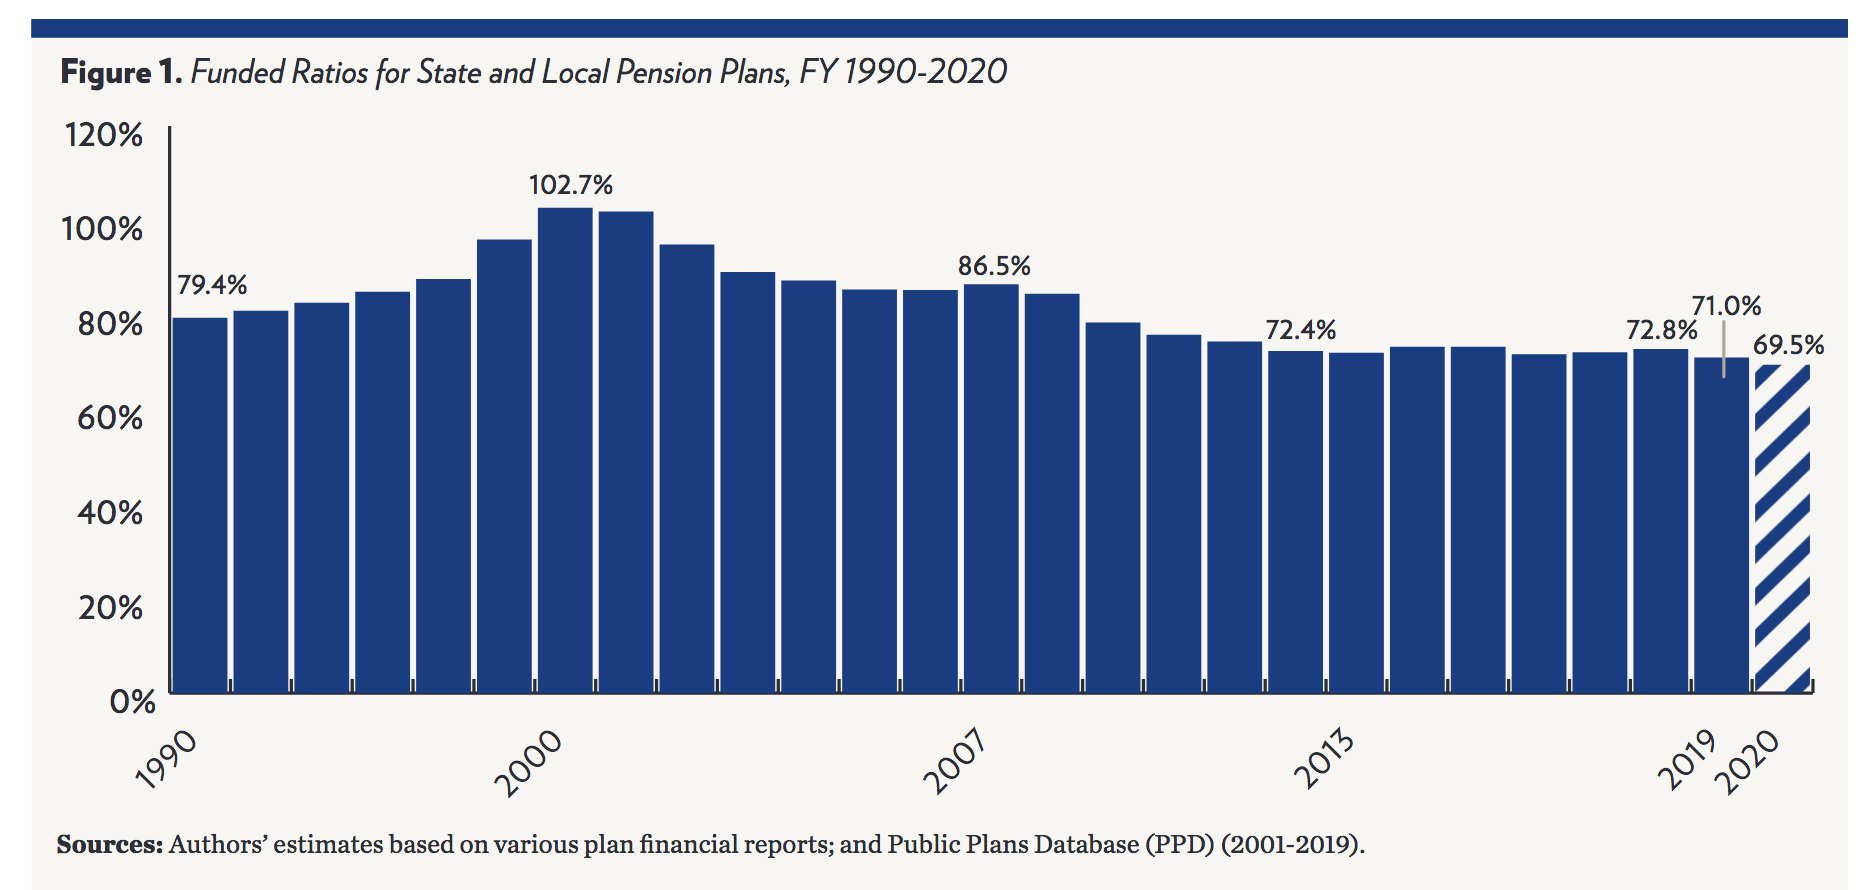 Public Pension Plans in a World of Hurt; Even Loyalists Warning of Grim Prospects 2